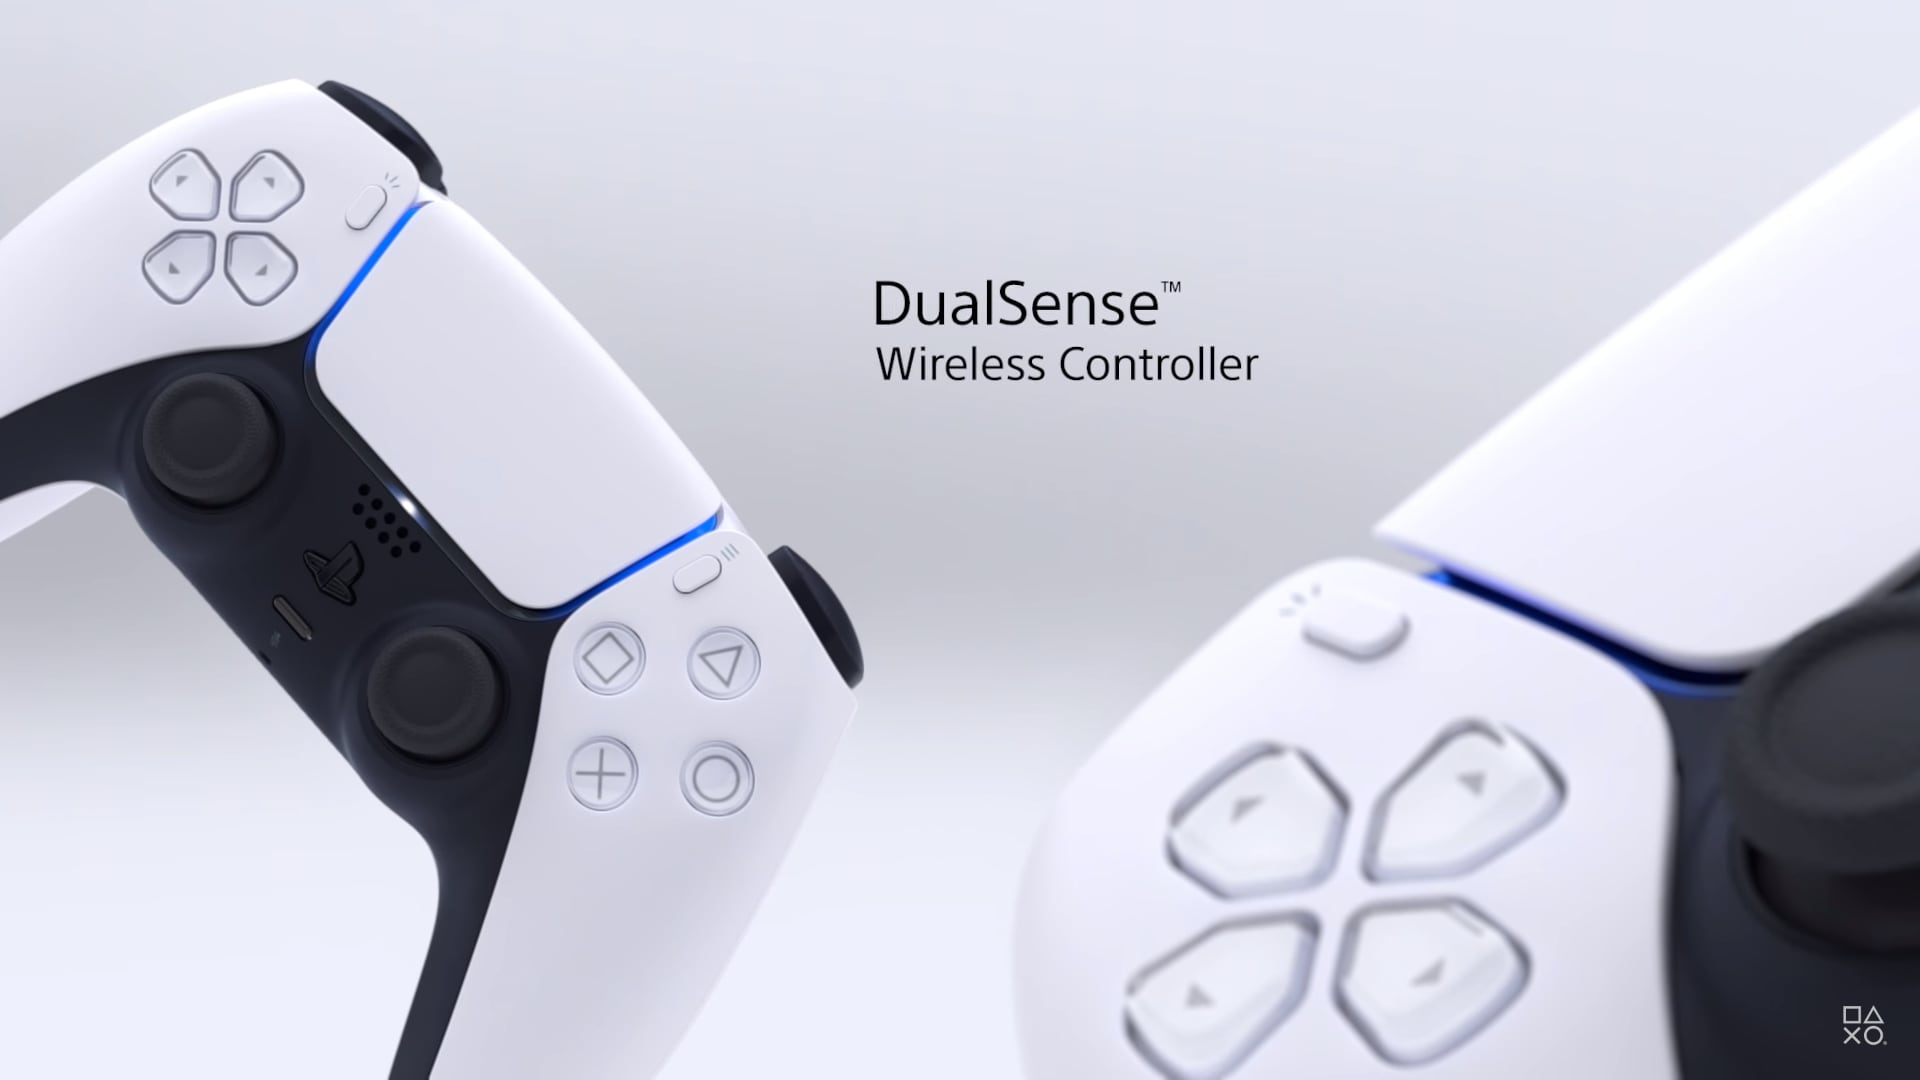 Sony has already revealed the DualSense Controller that will come with PlayStation 5.